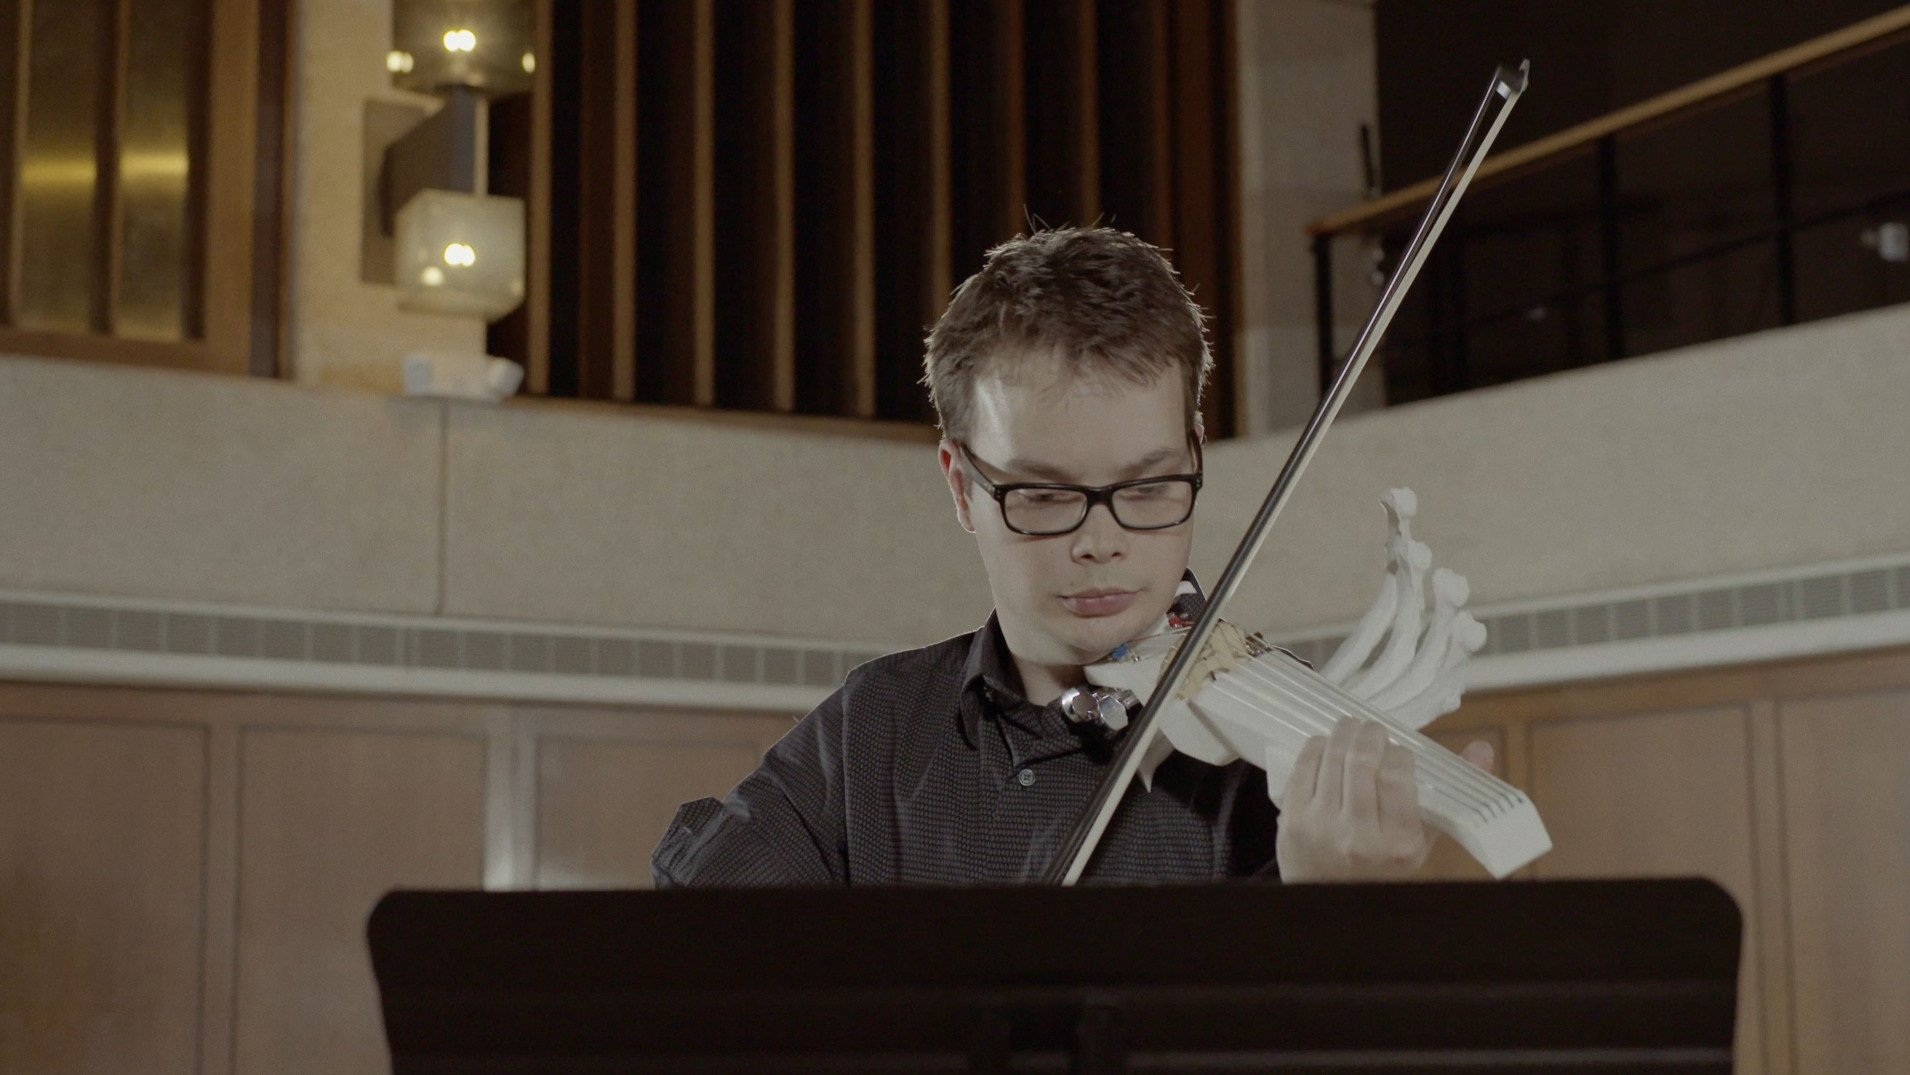 UT Grad Student Creates 3D Printed Six String Violin to Play Rare Composition | All3DP